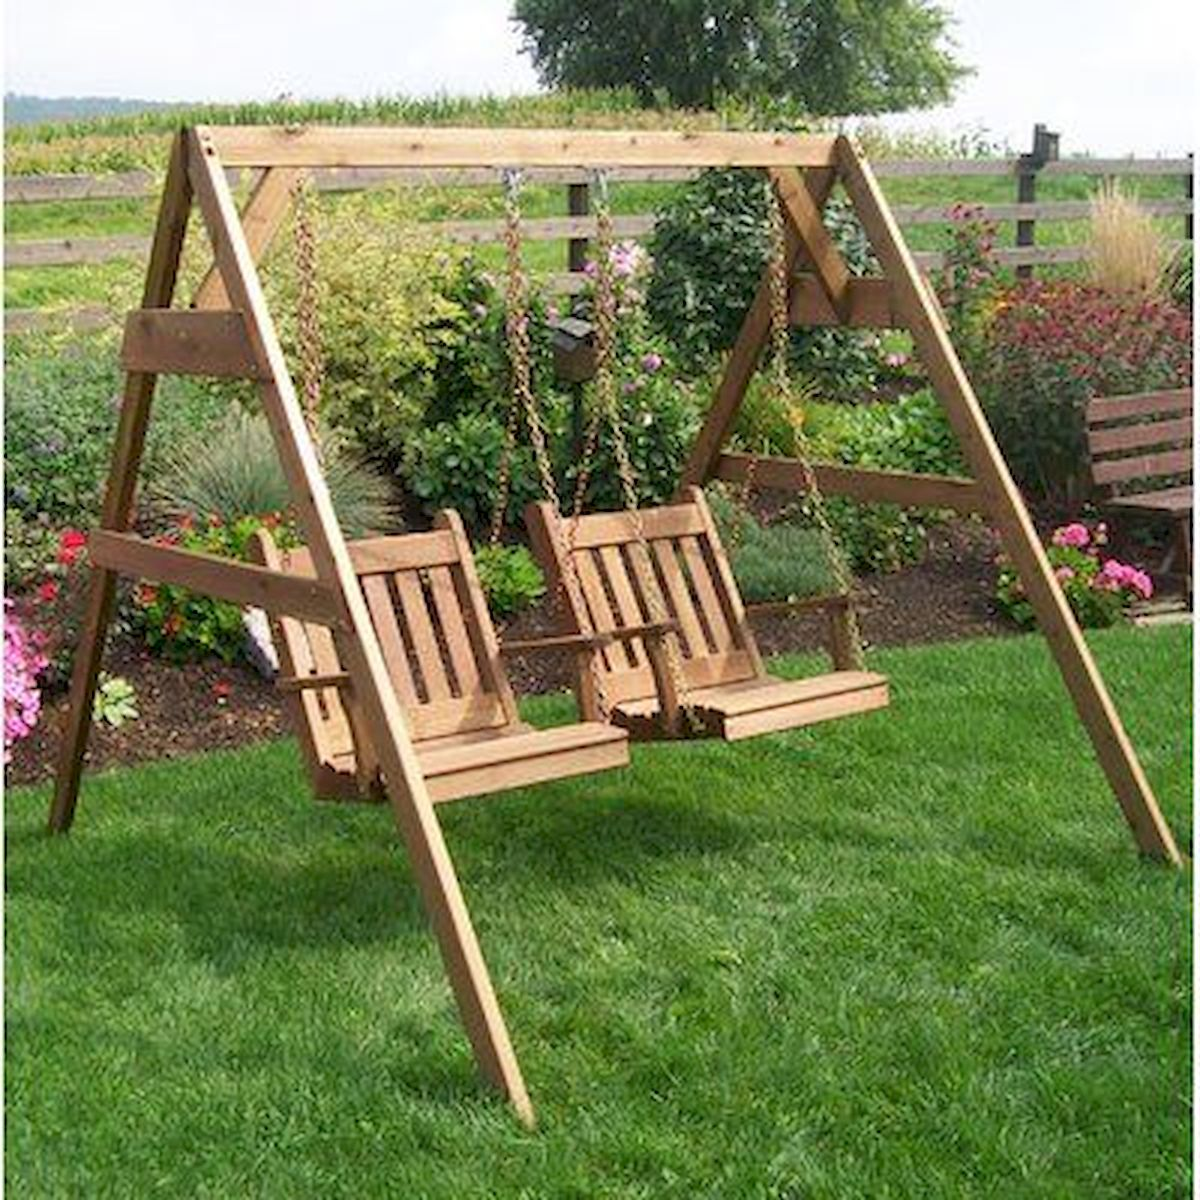 30 Fantastic DIY Wooden Pallet Swing Chair Ideas (21)